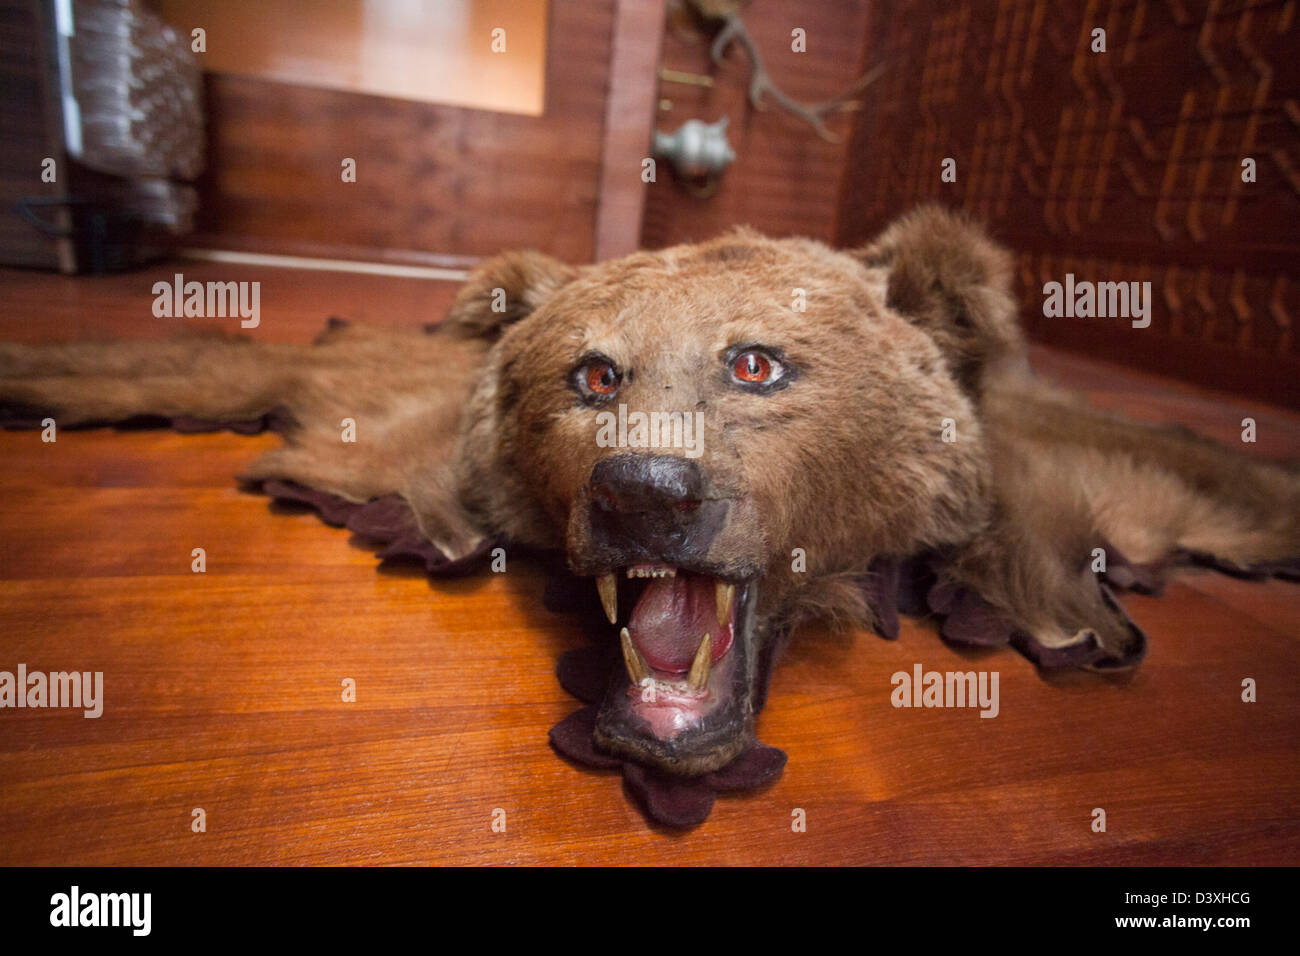 name skin bear forum water showthread mb size damages attachment jpg flood rug views